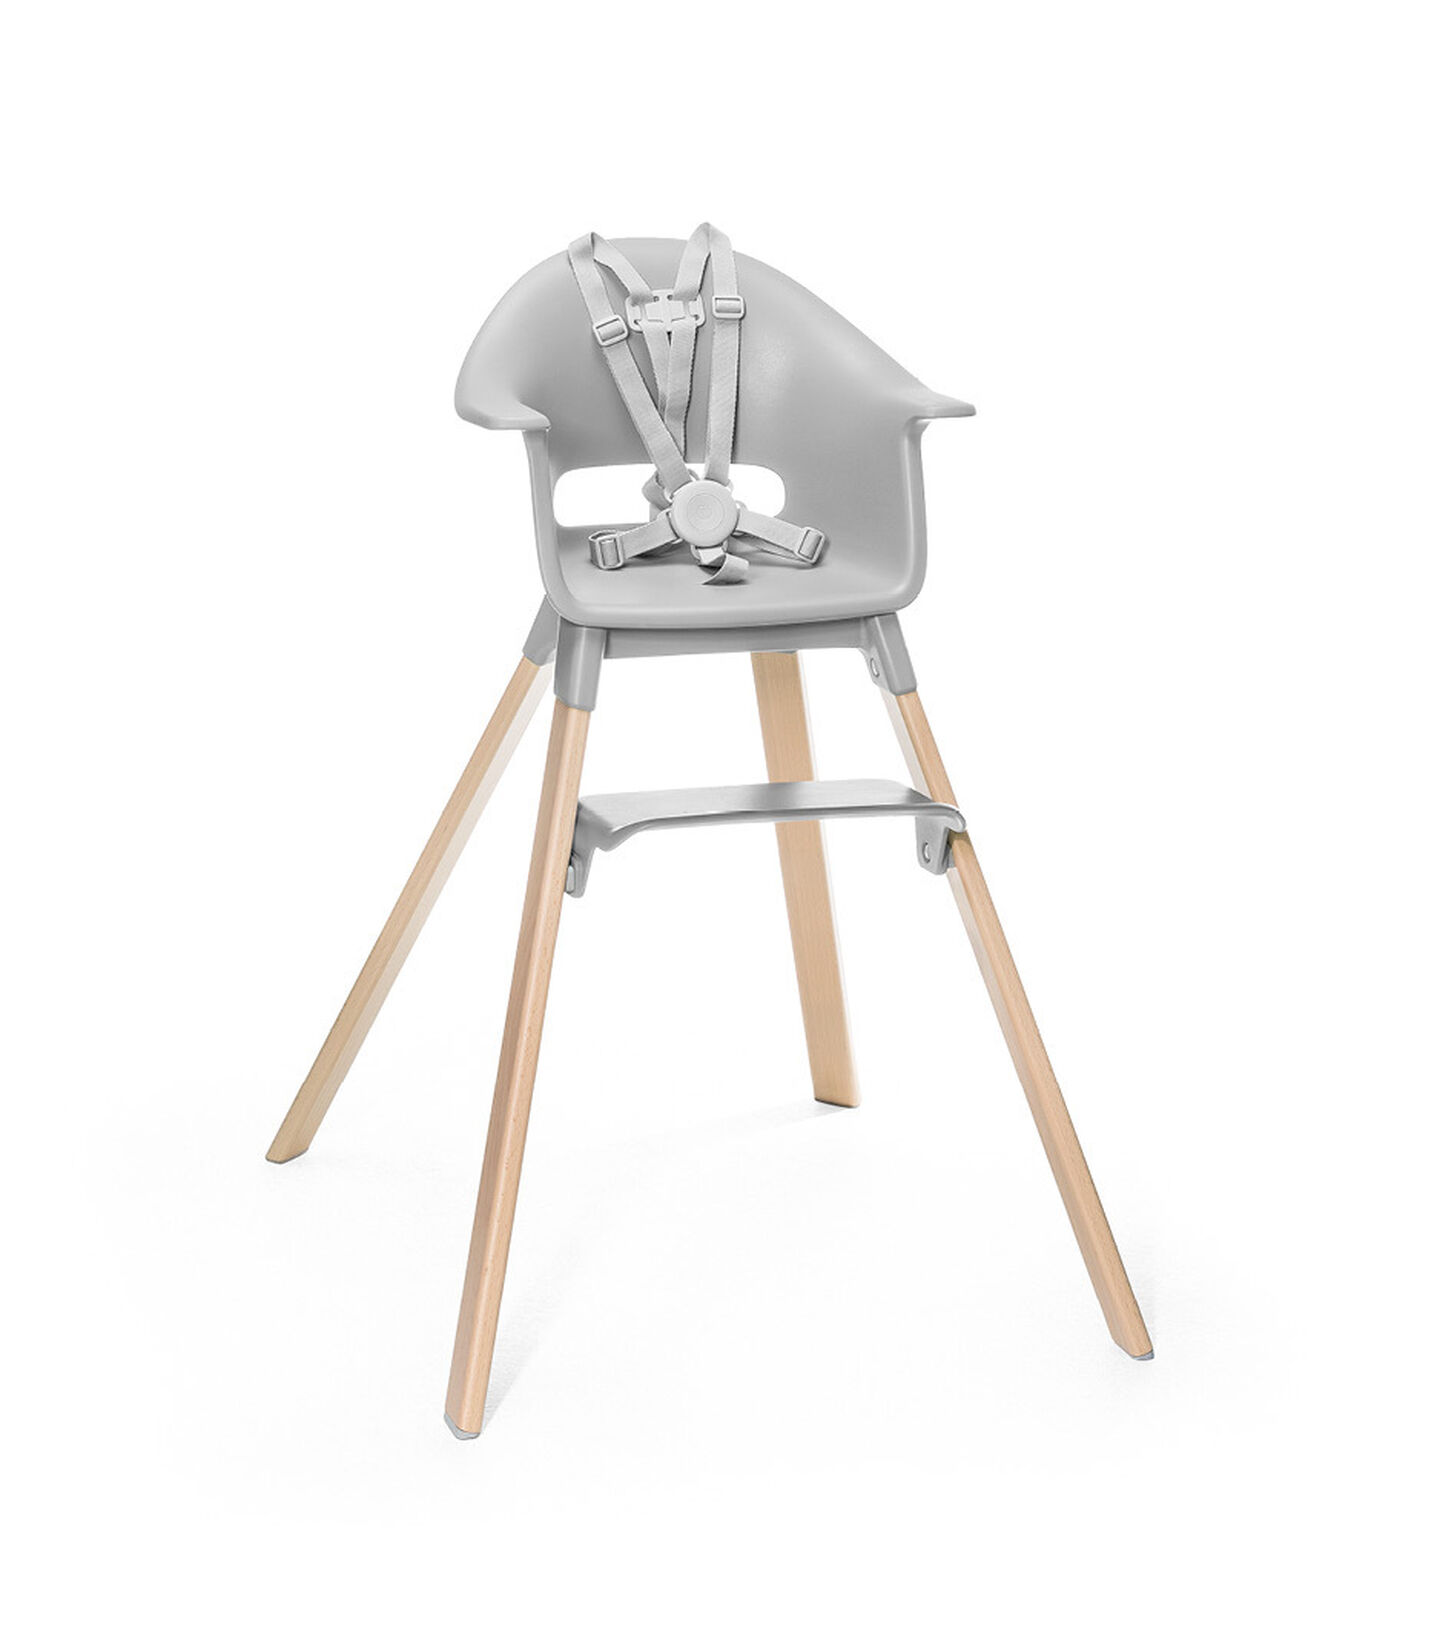 Stokke® Clikk™ High Chair. Natural Beech wood and Light Grey plastic parts. Stokke® Harness attached. Footrest low.